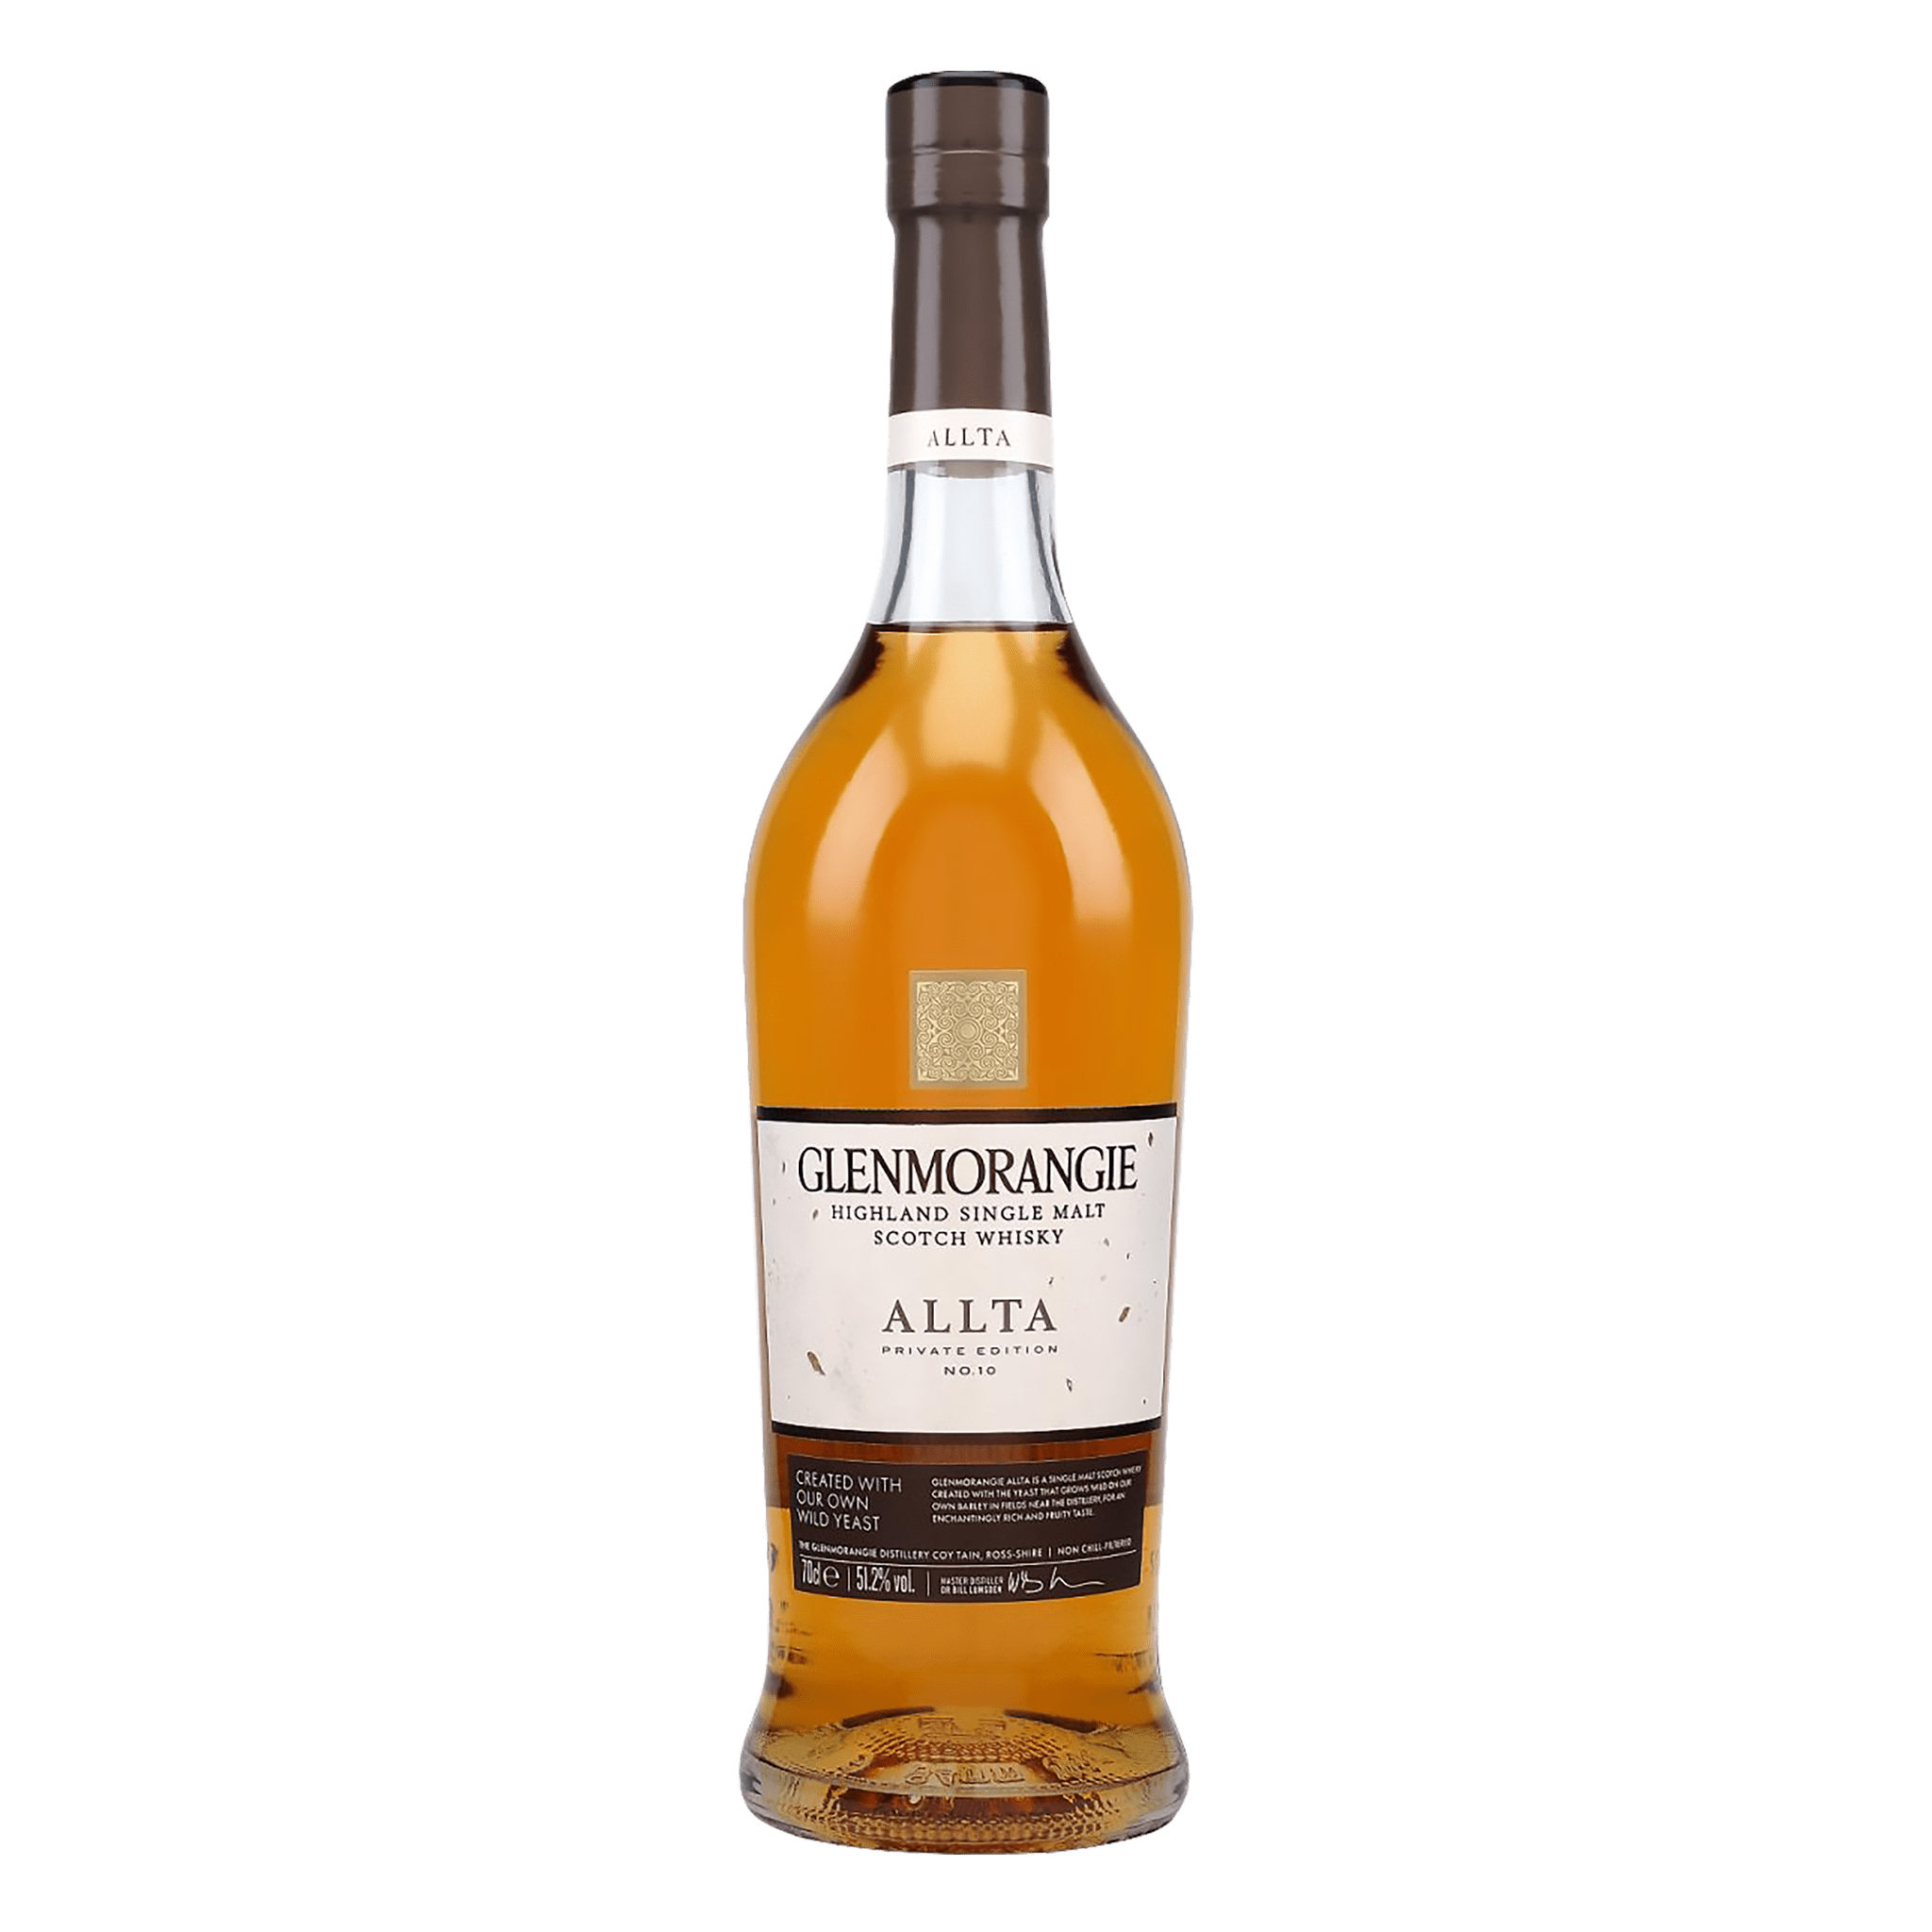 Glenmorangie Allta Private Edition Single Malt Scotch Whisky 700ml